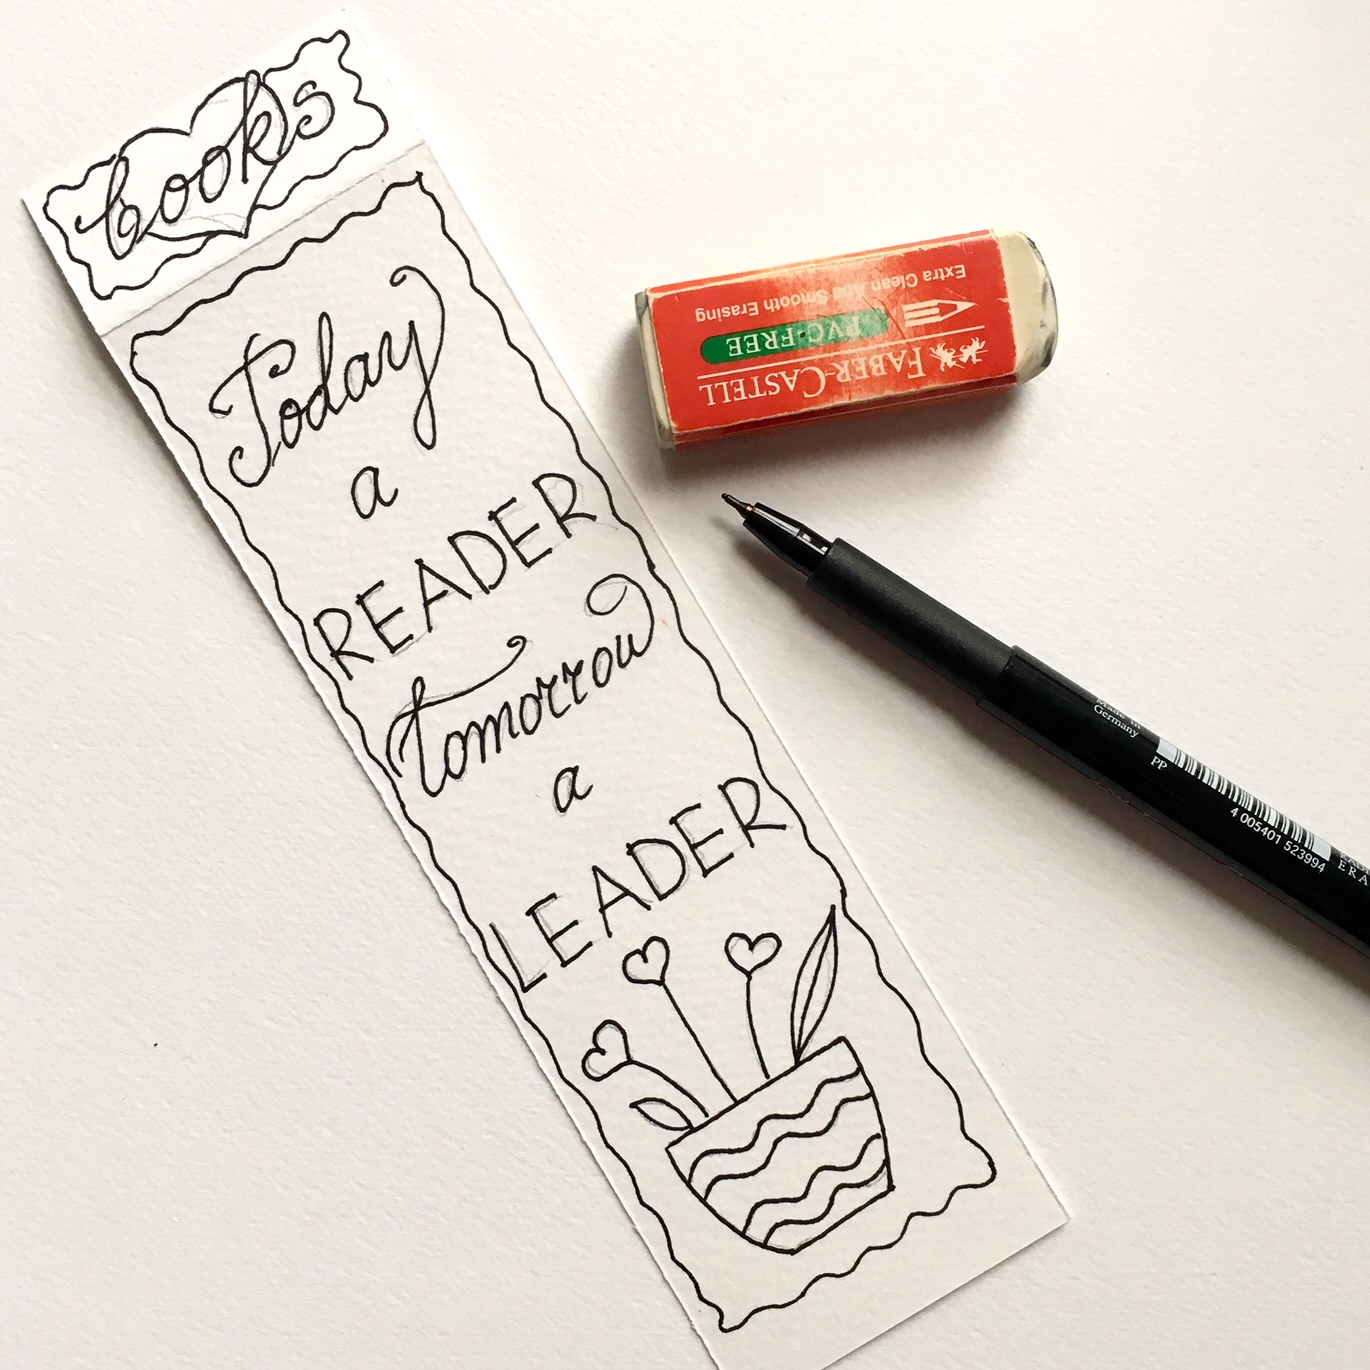 drawing and handwriting with black alcohol based marker to make a colouring image on a handmade bookmark